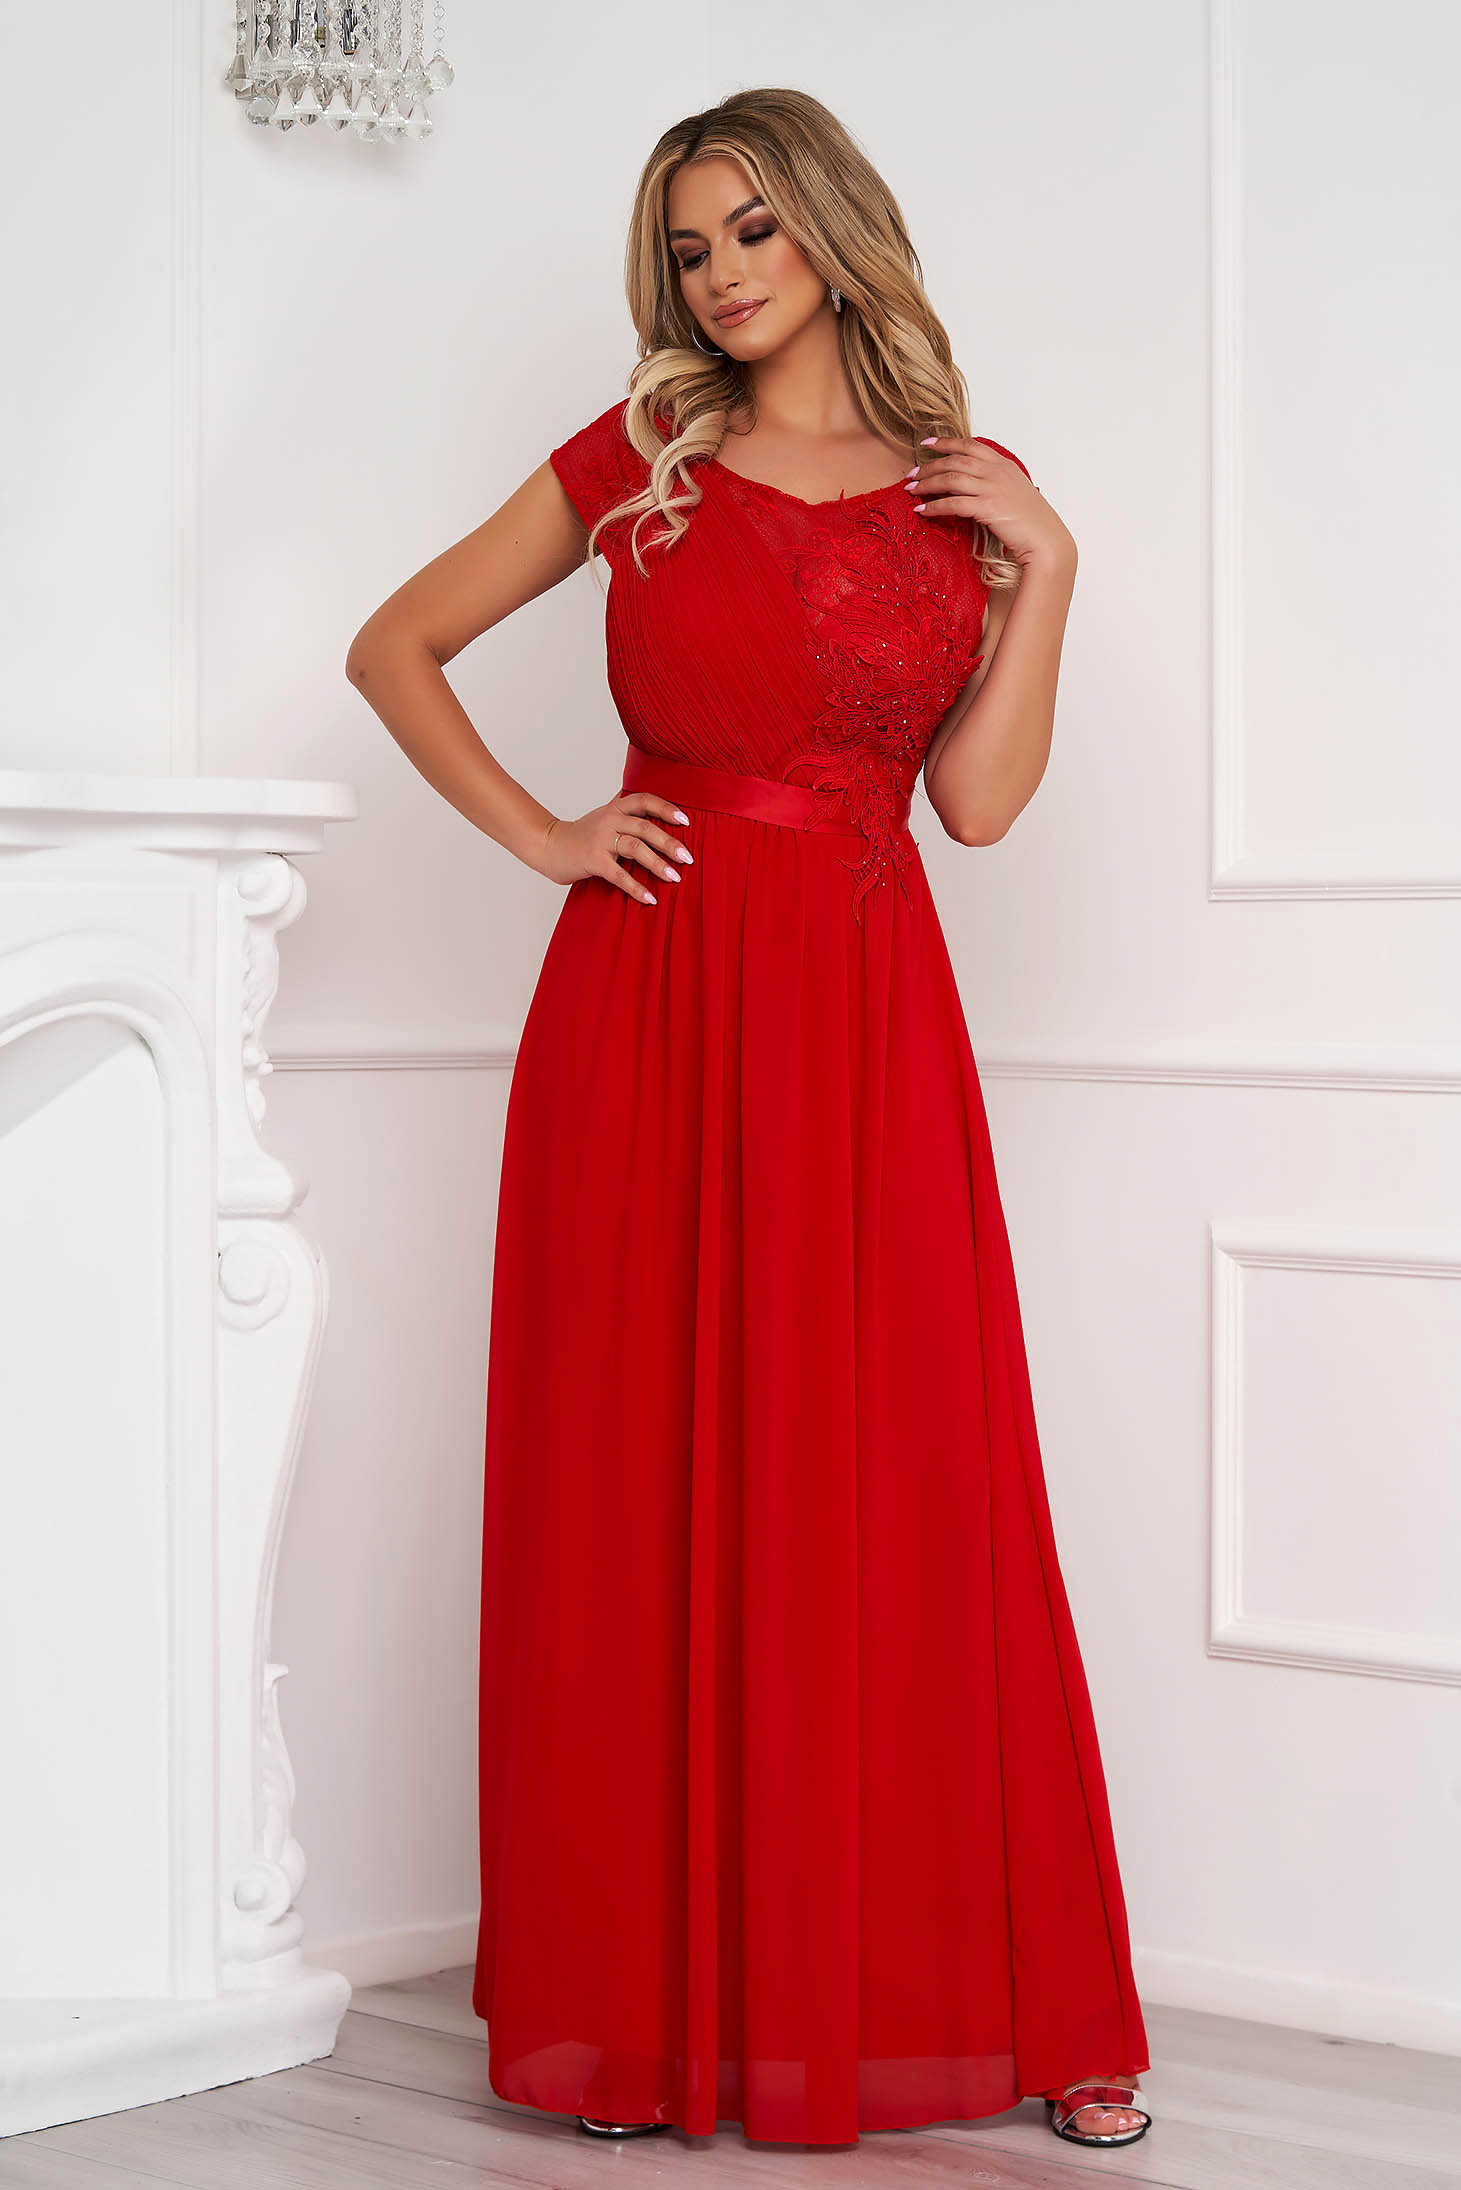 Red dress long occasional cloche from veil fabric with lace details with push-up cups